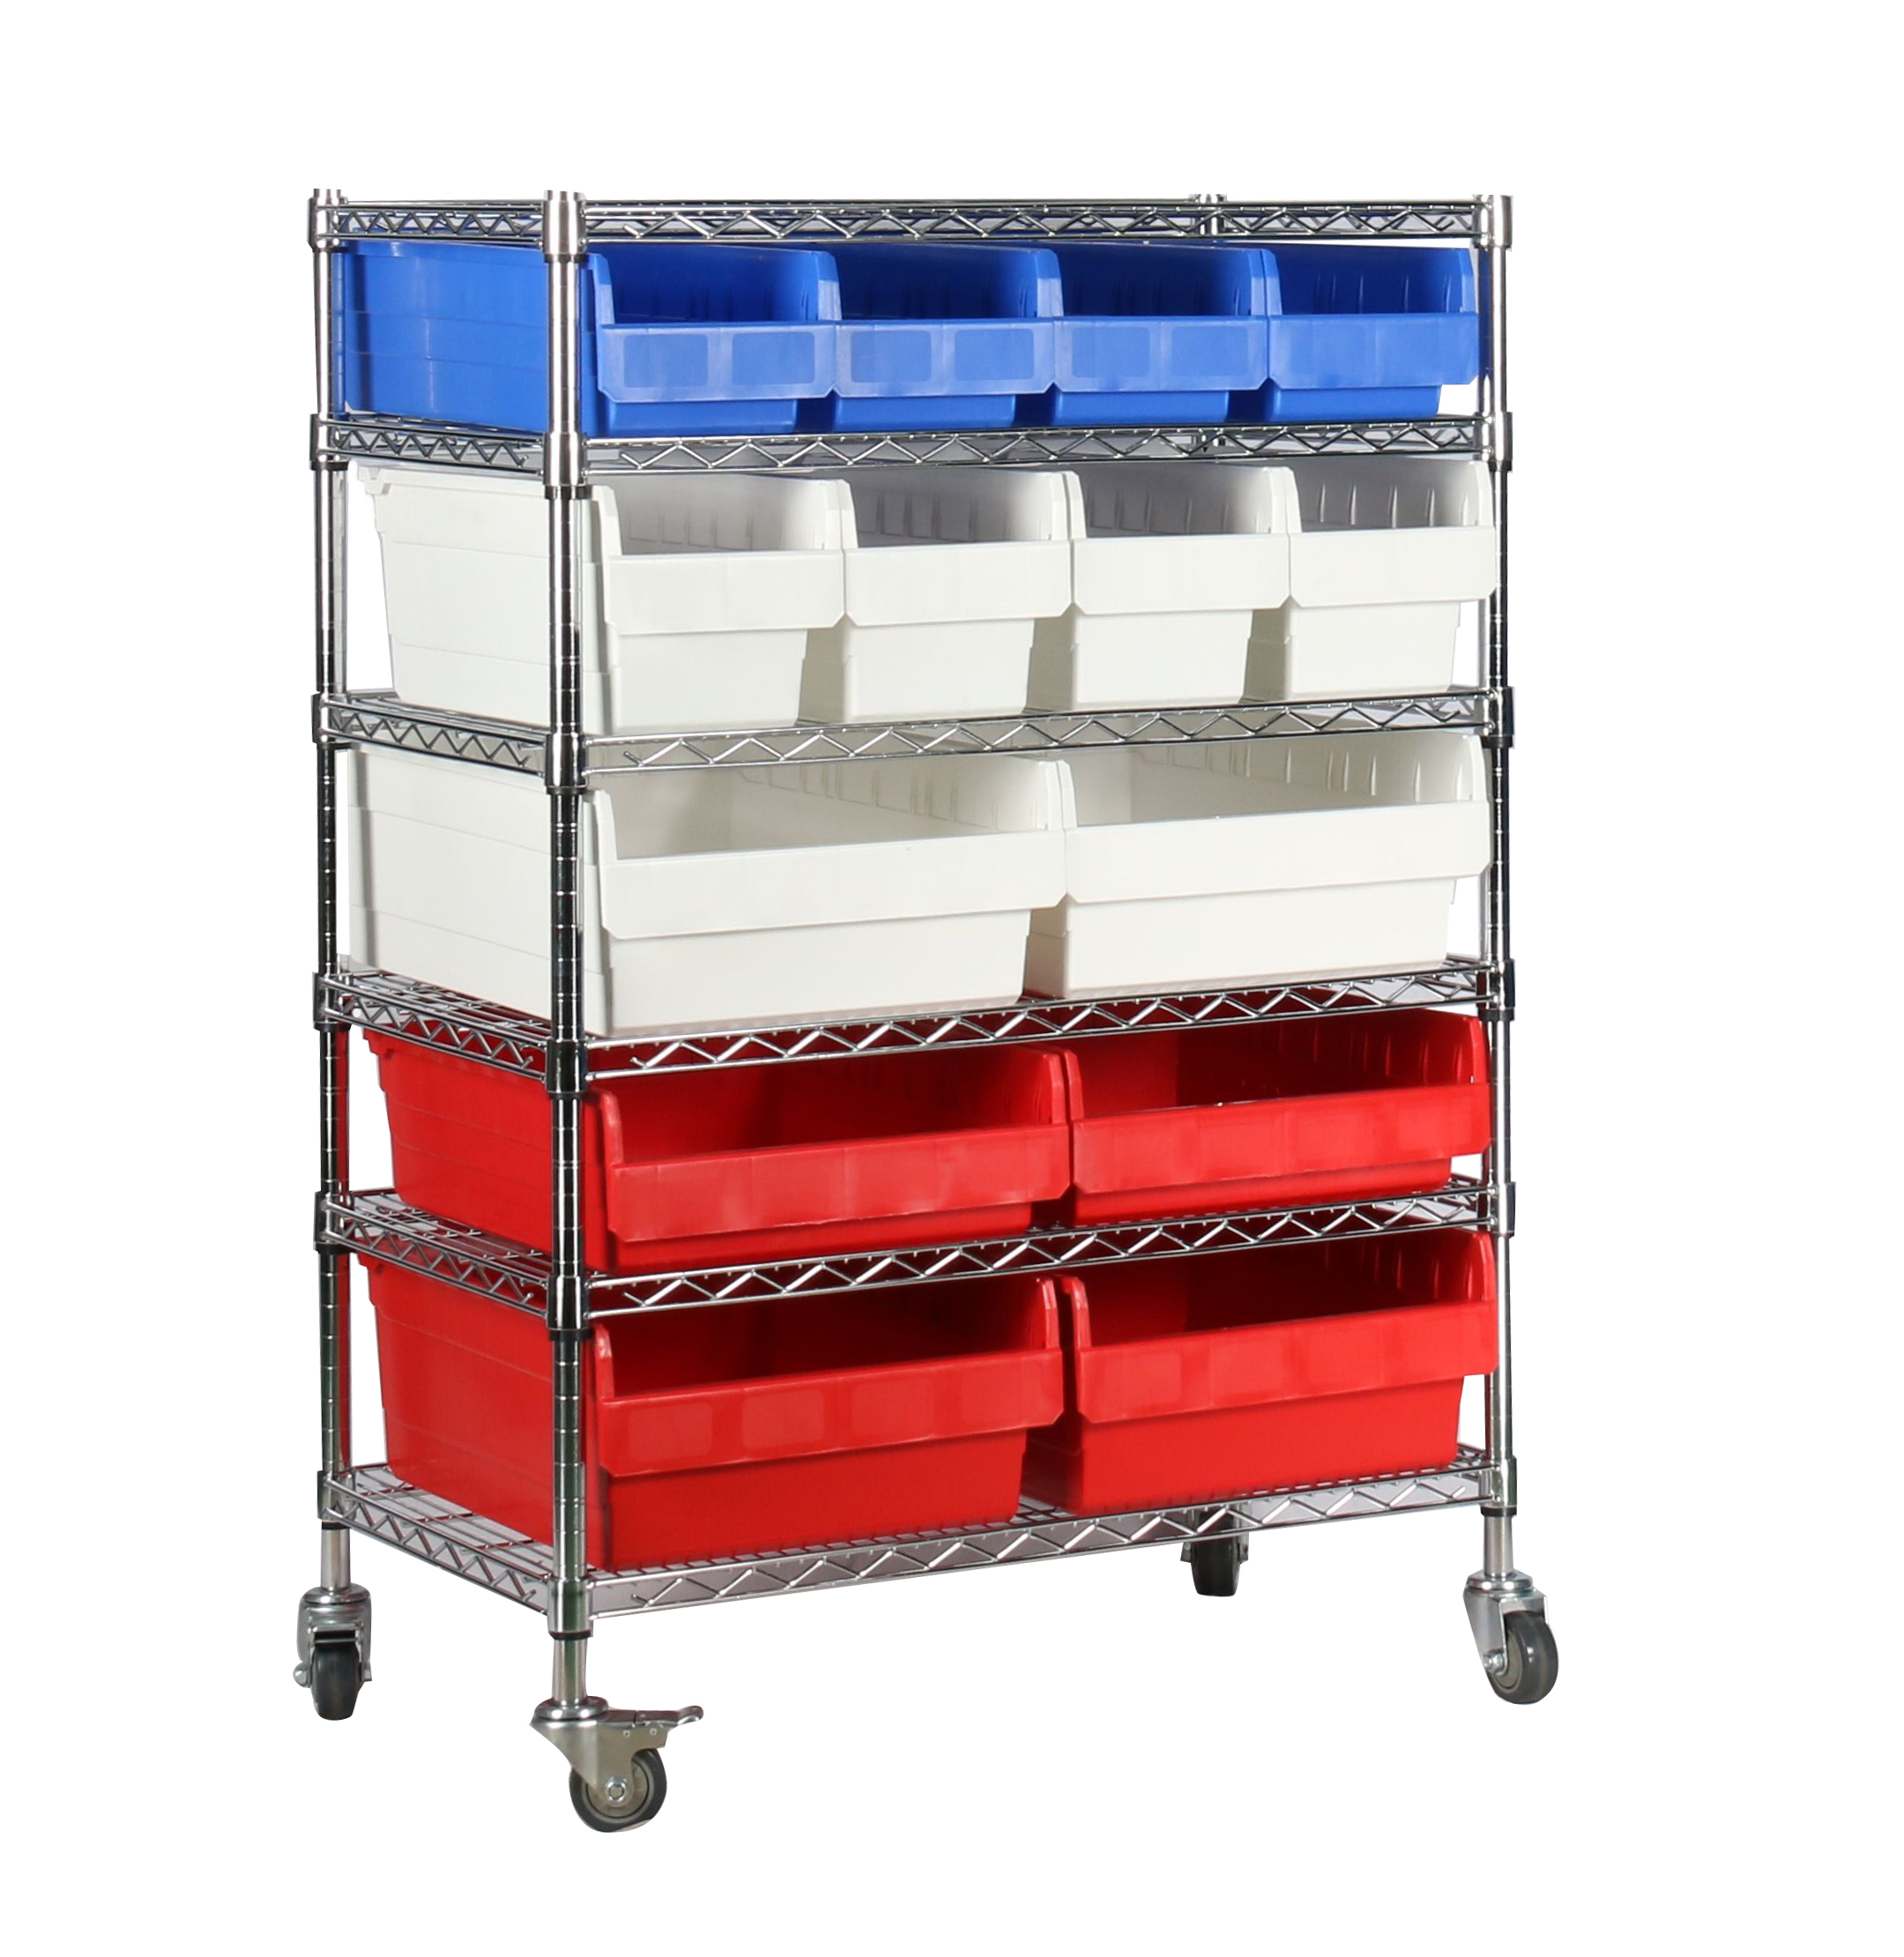 Pharmacy and healthcare storage solution for hospital